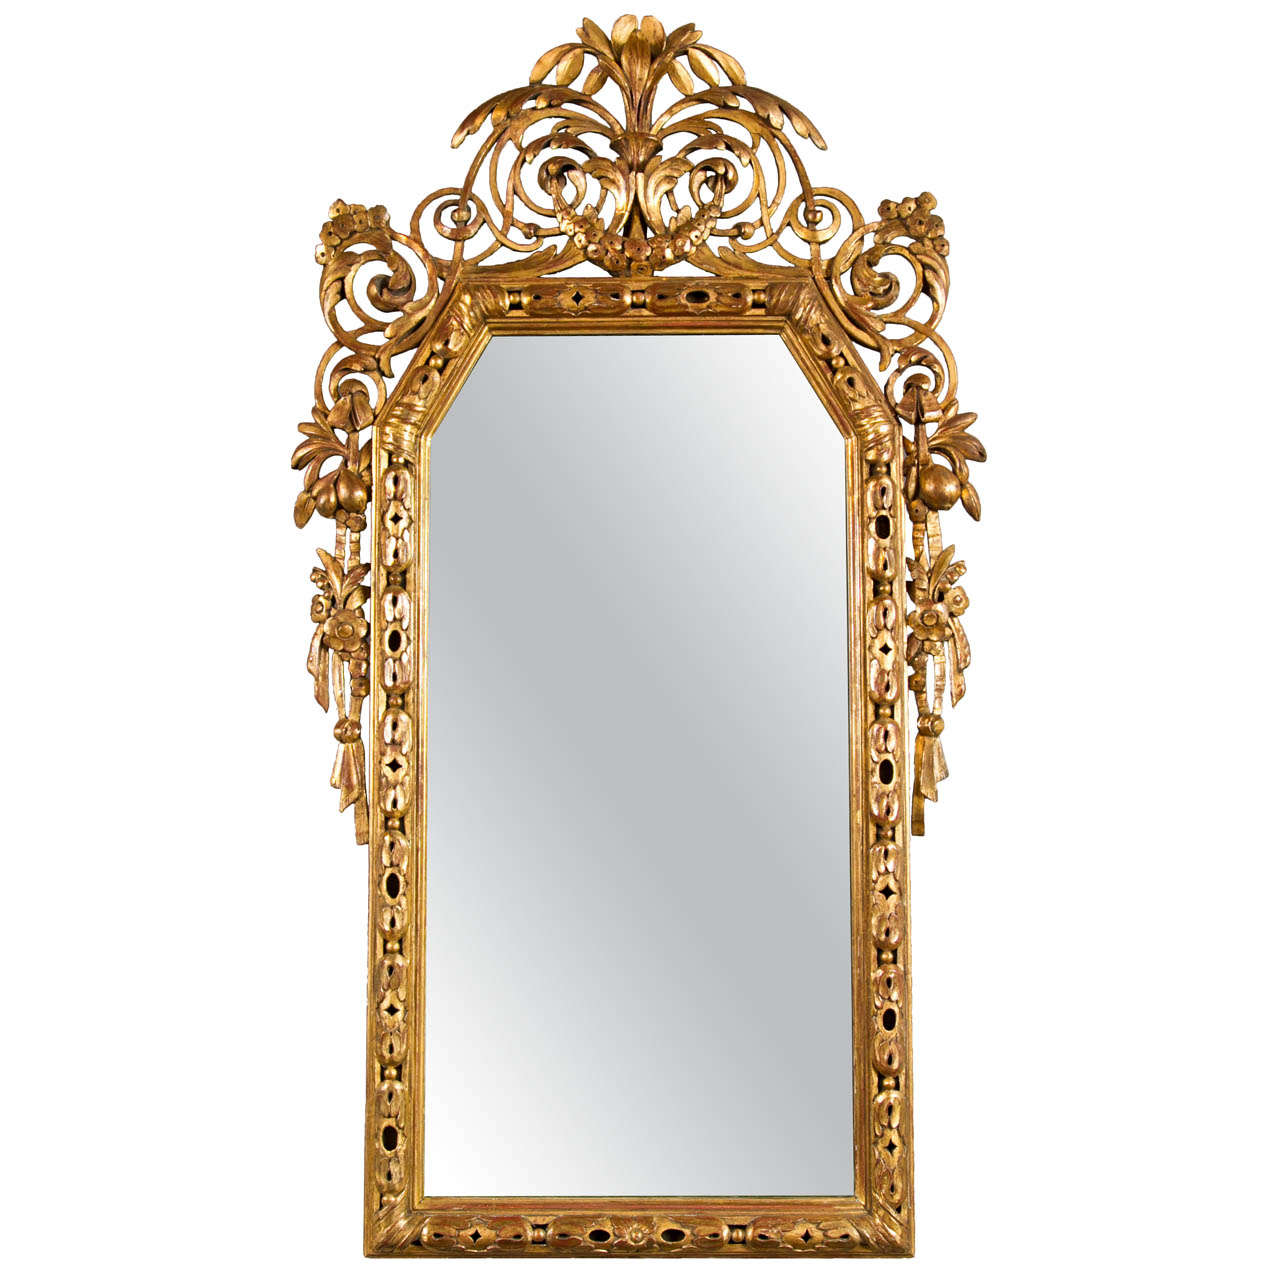 An Italian Neoclassical Mirror Late 18th Century For Sale